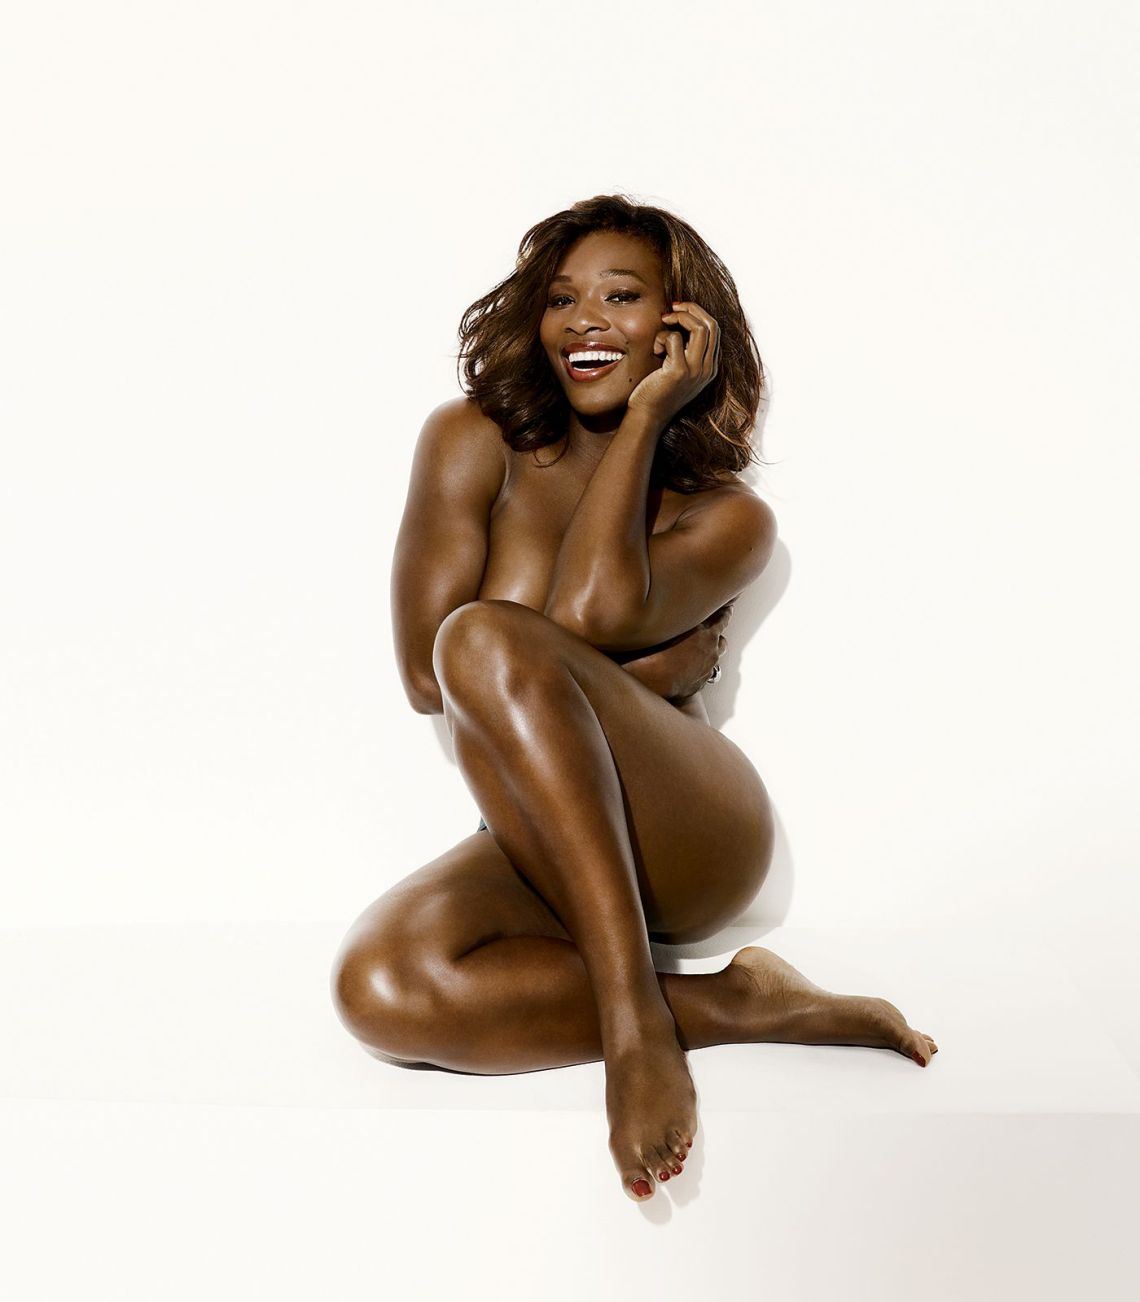 featured-photos-25.jpg SERENA WILLIAMS